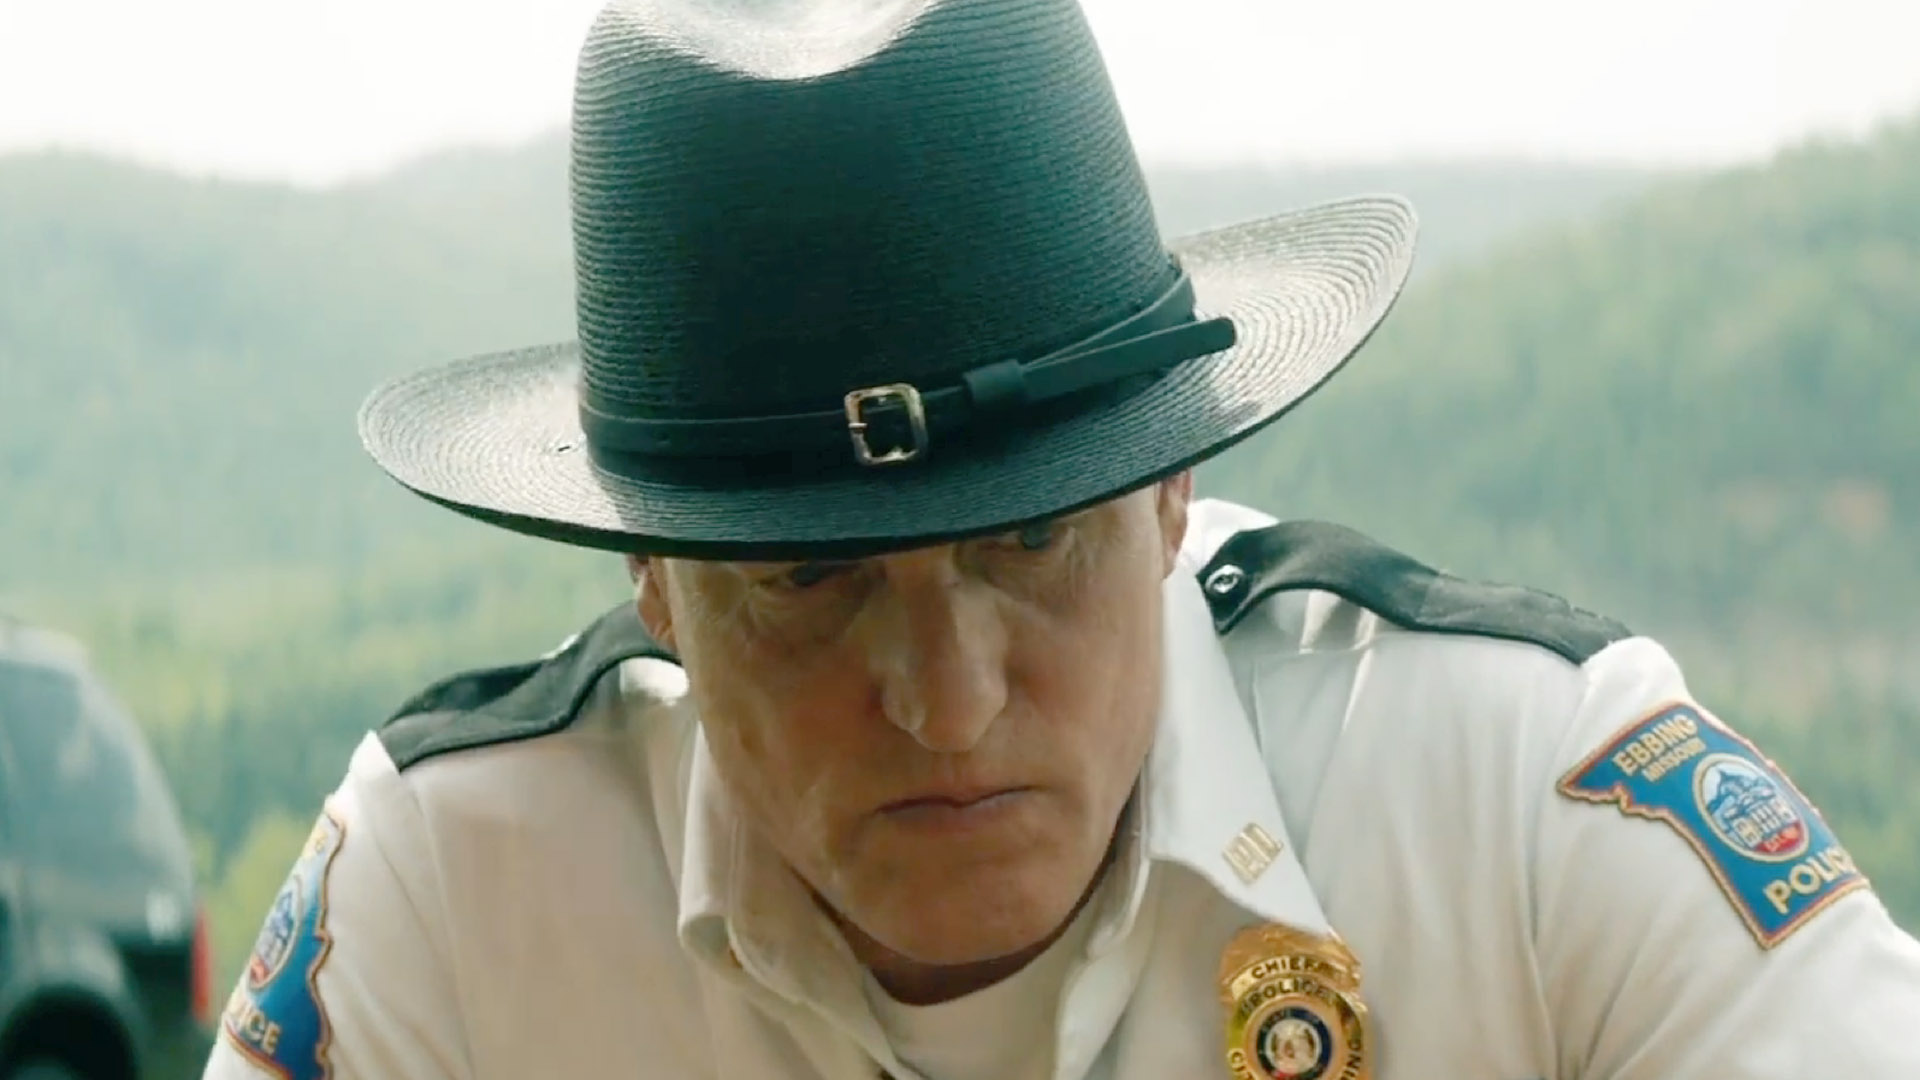 The trailer for 'Three Billboards Outside Ebbing, Missouri' is bleakly humorous